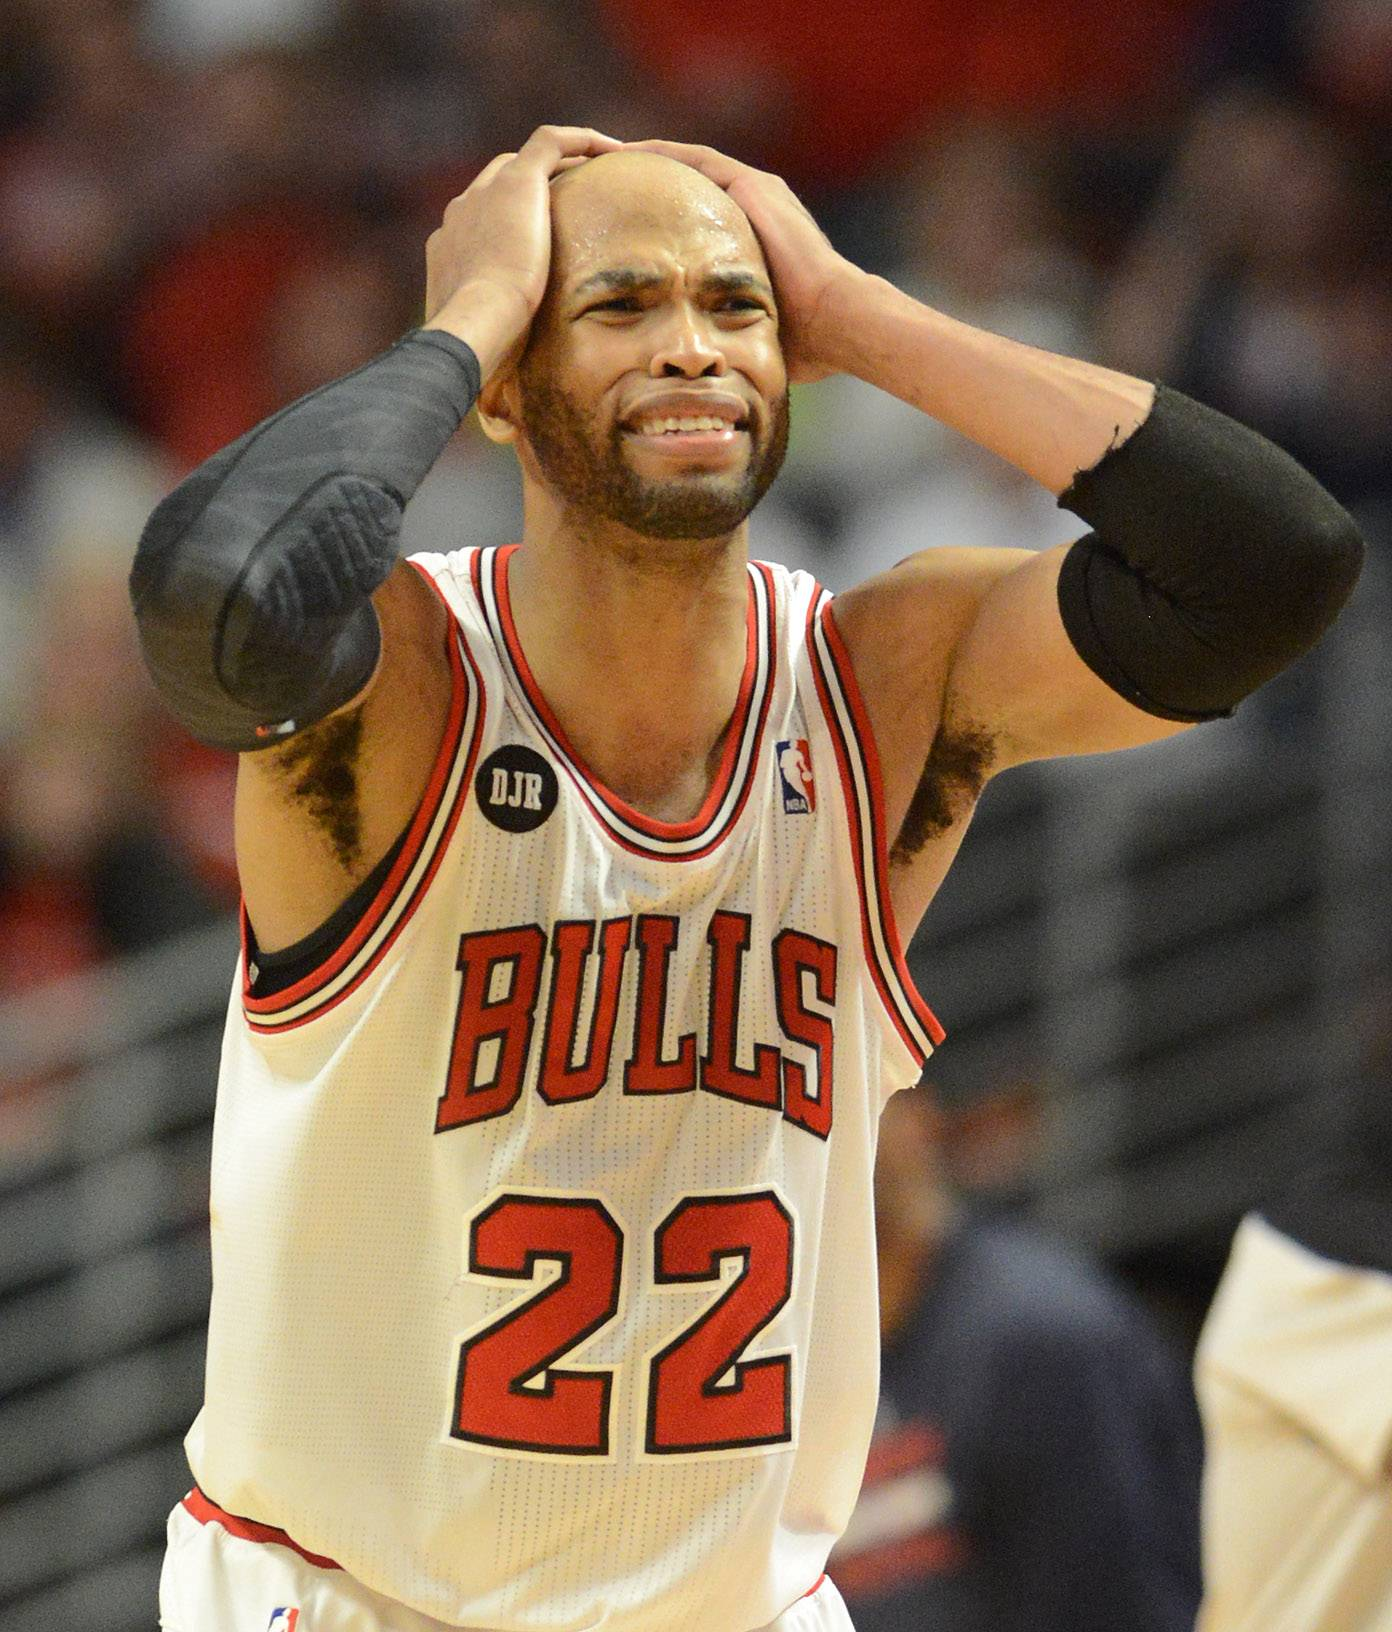 Chicago Bulls forward Taj Gibson (22) reacts as things start going the Wizards' way.